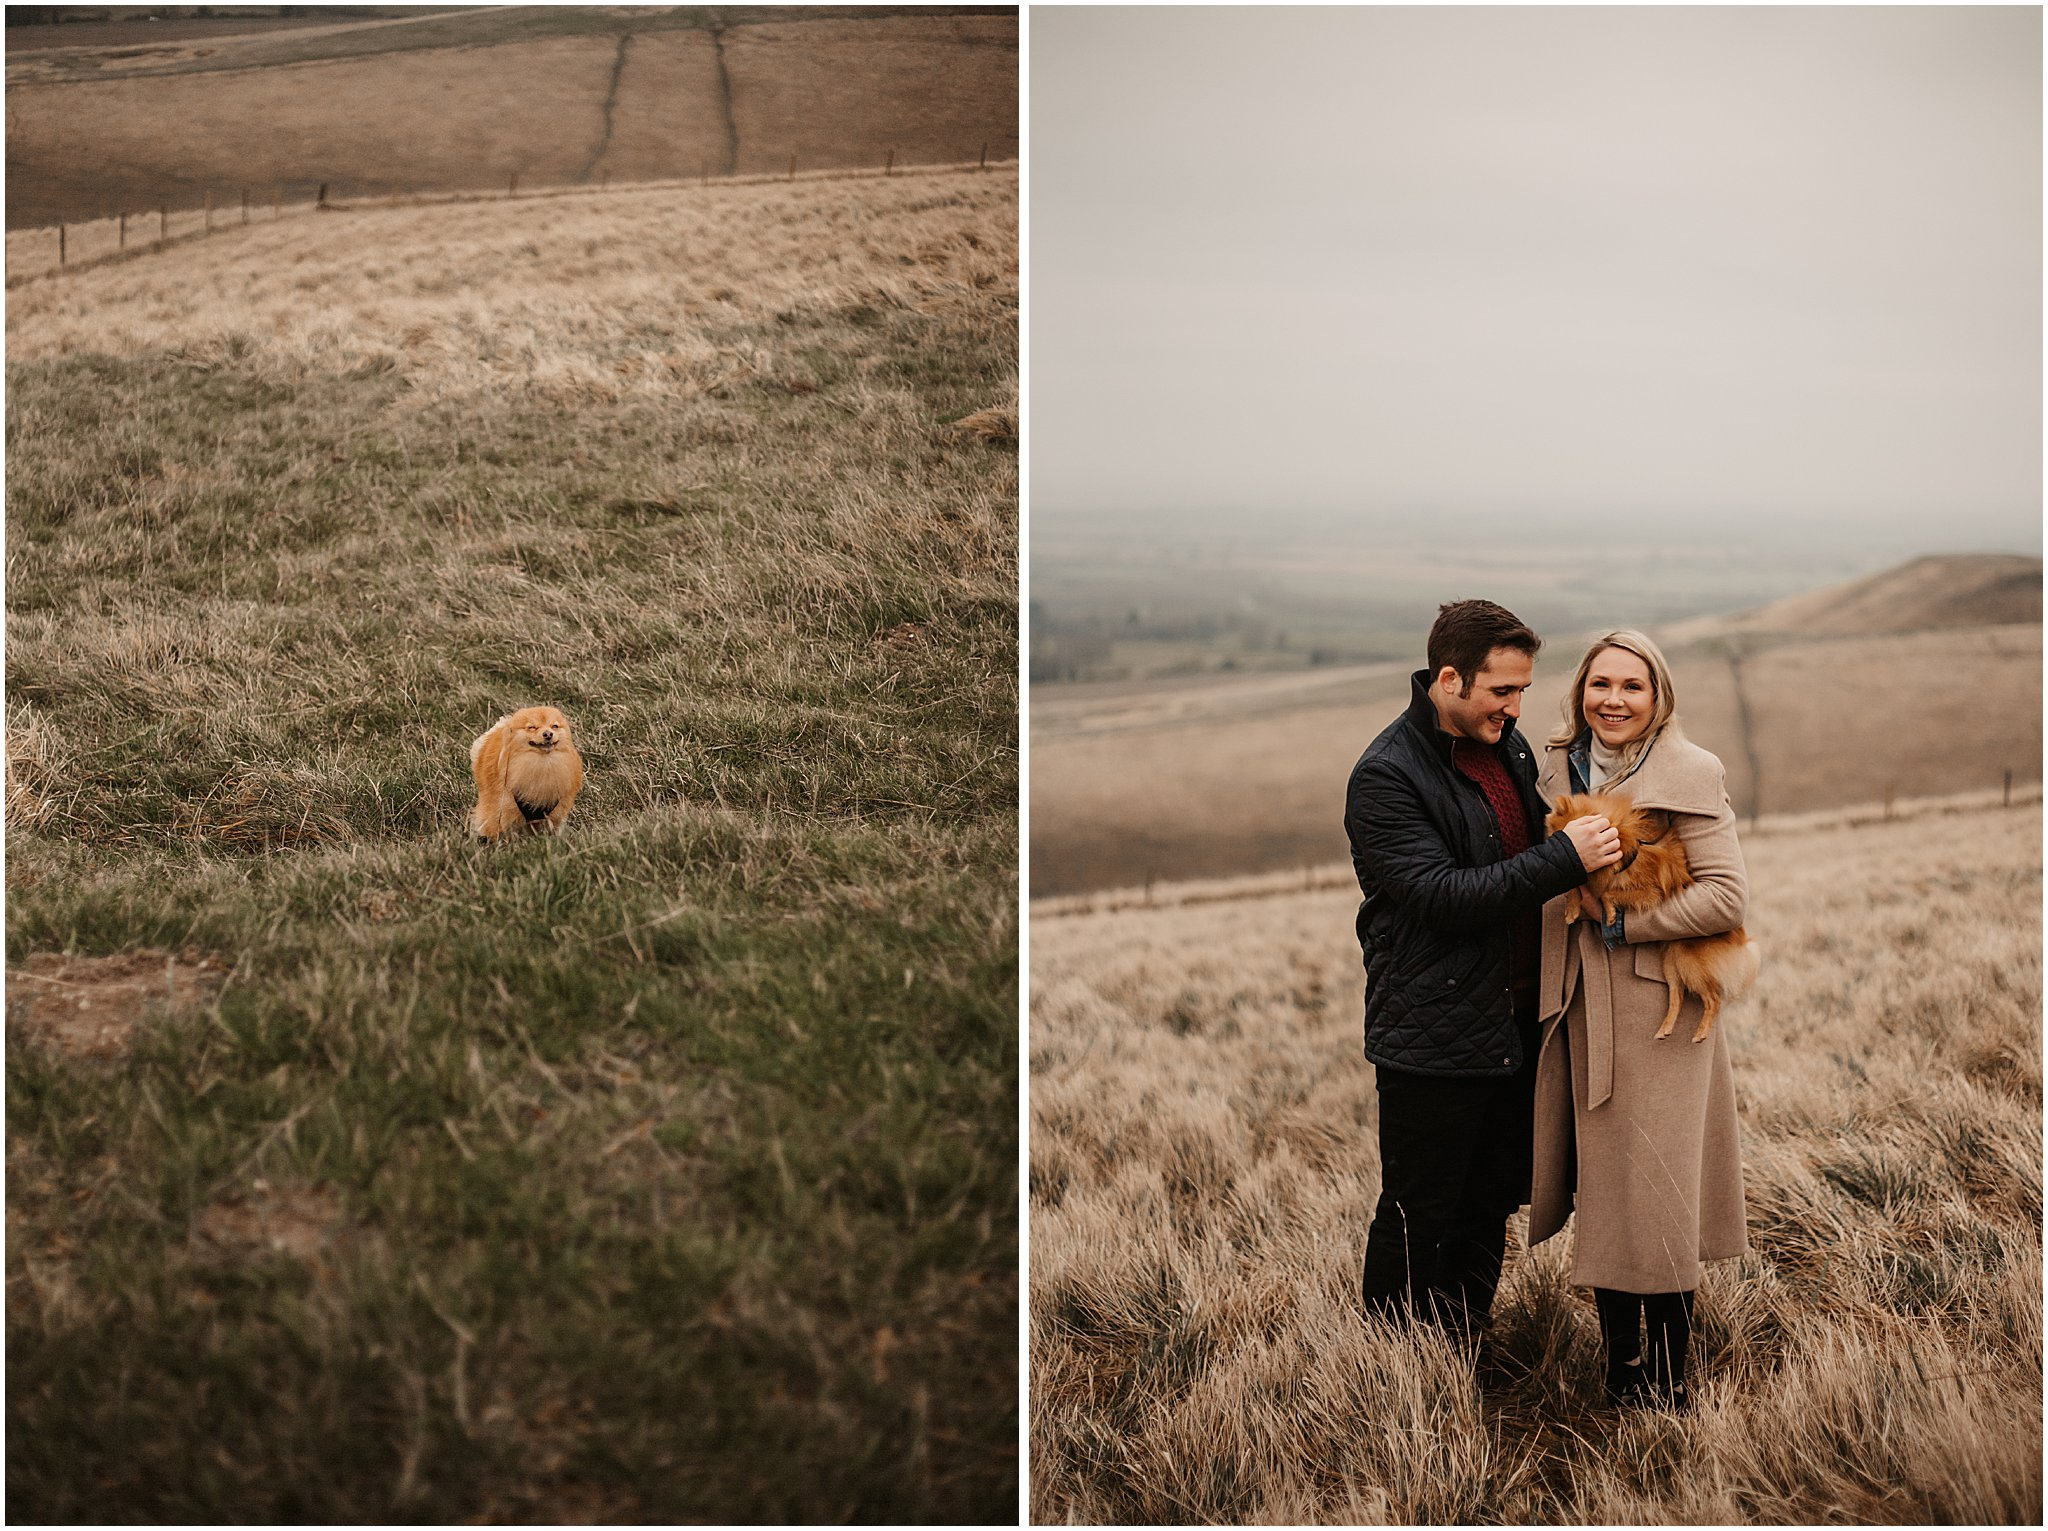 Mike & Charley_s Winter Engagement Shoot Wiltshire.jpg